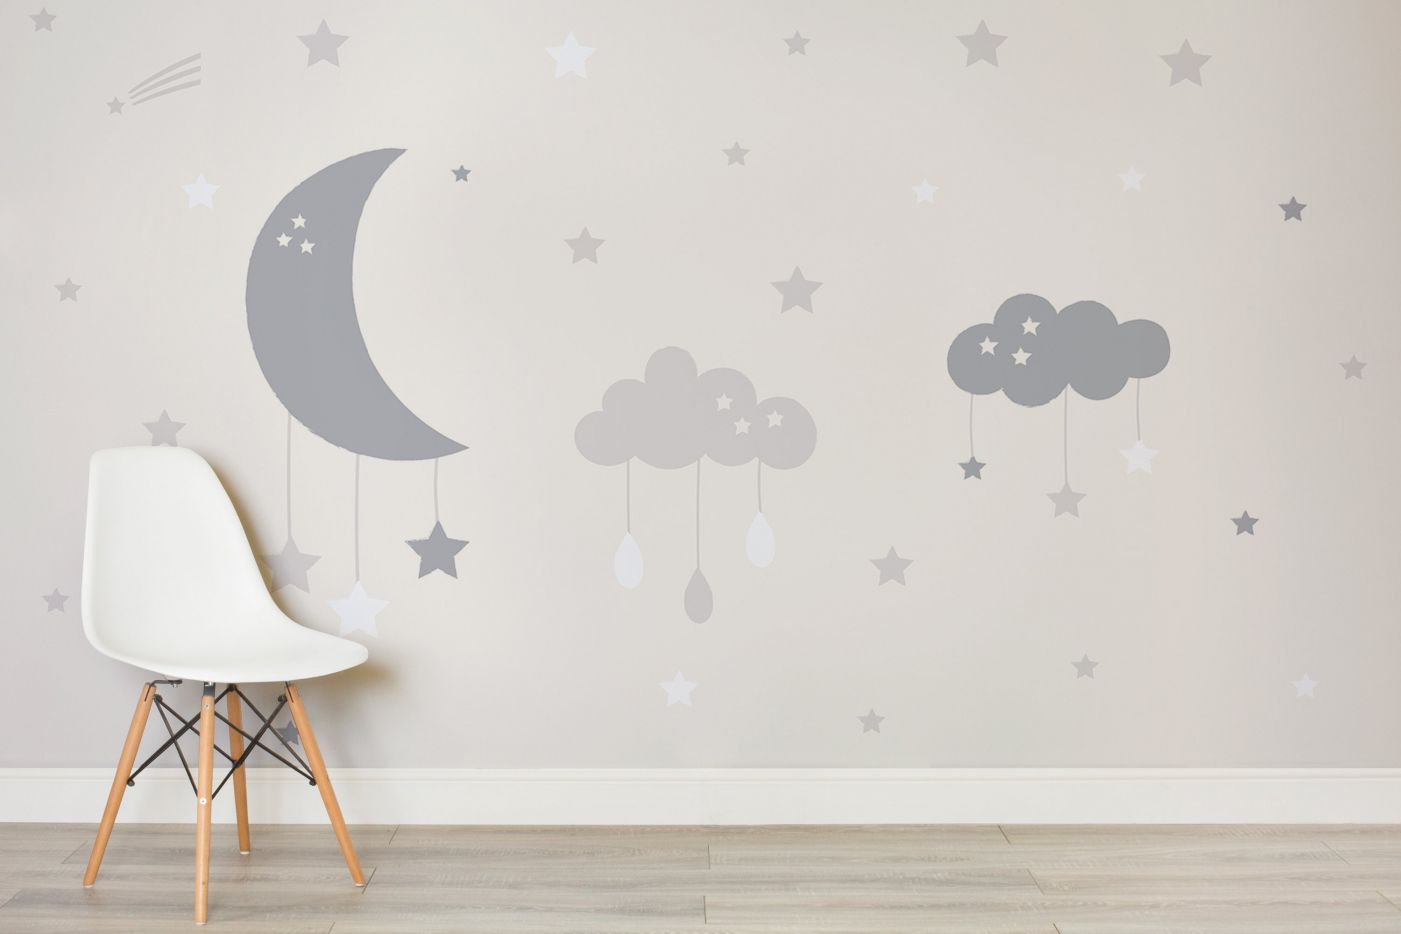 Wallpaper For Baby Room Best Interior Paint Colors Check More At Http Www Chulaniphotography Com Wallpaper Kamar Anak Kamar Anak Laki Kamar Anak Laki Laki